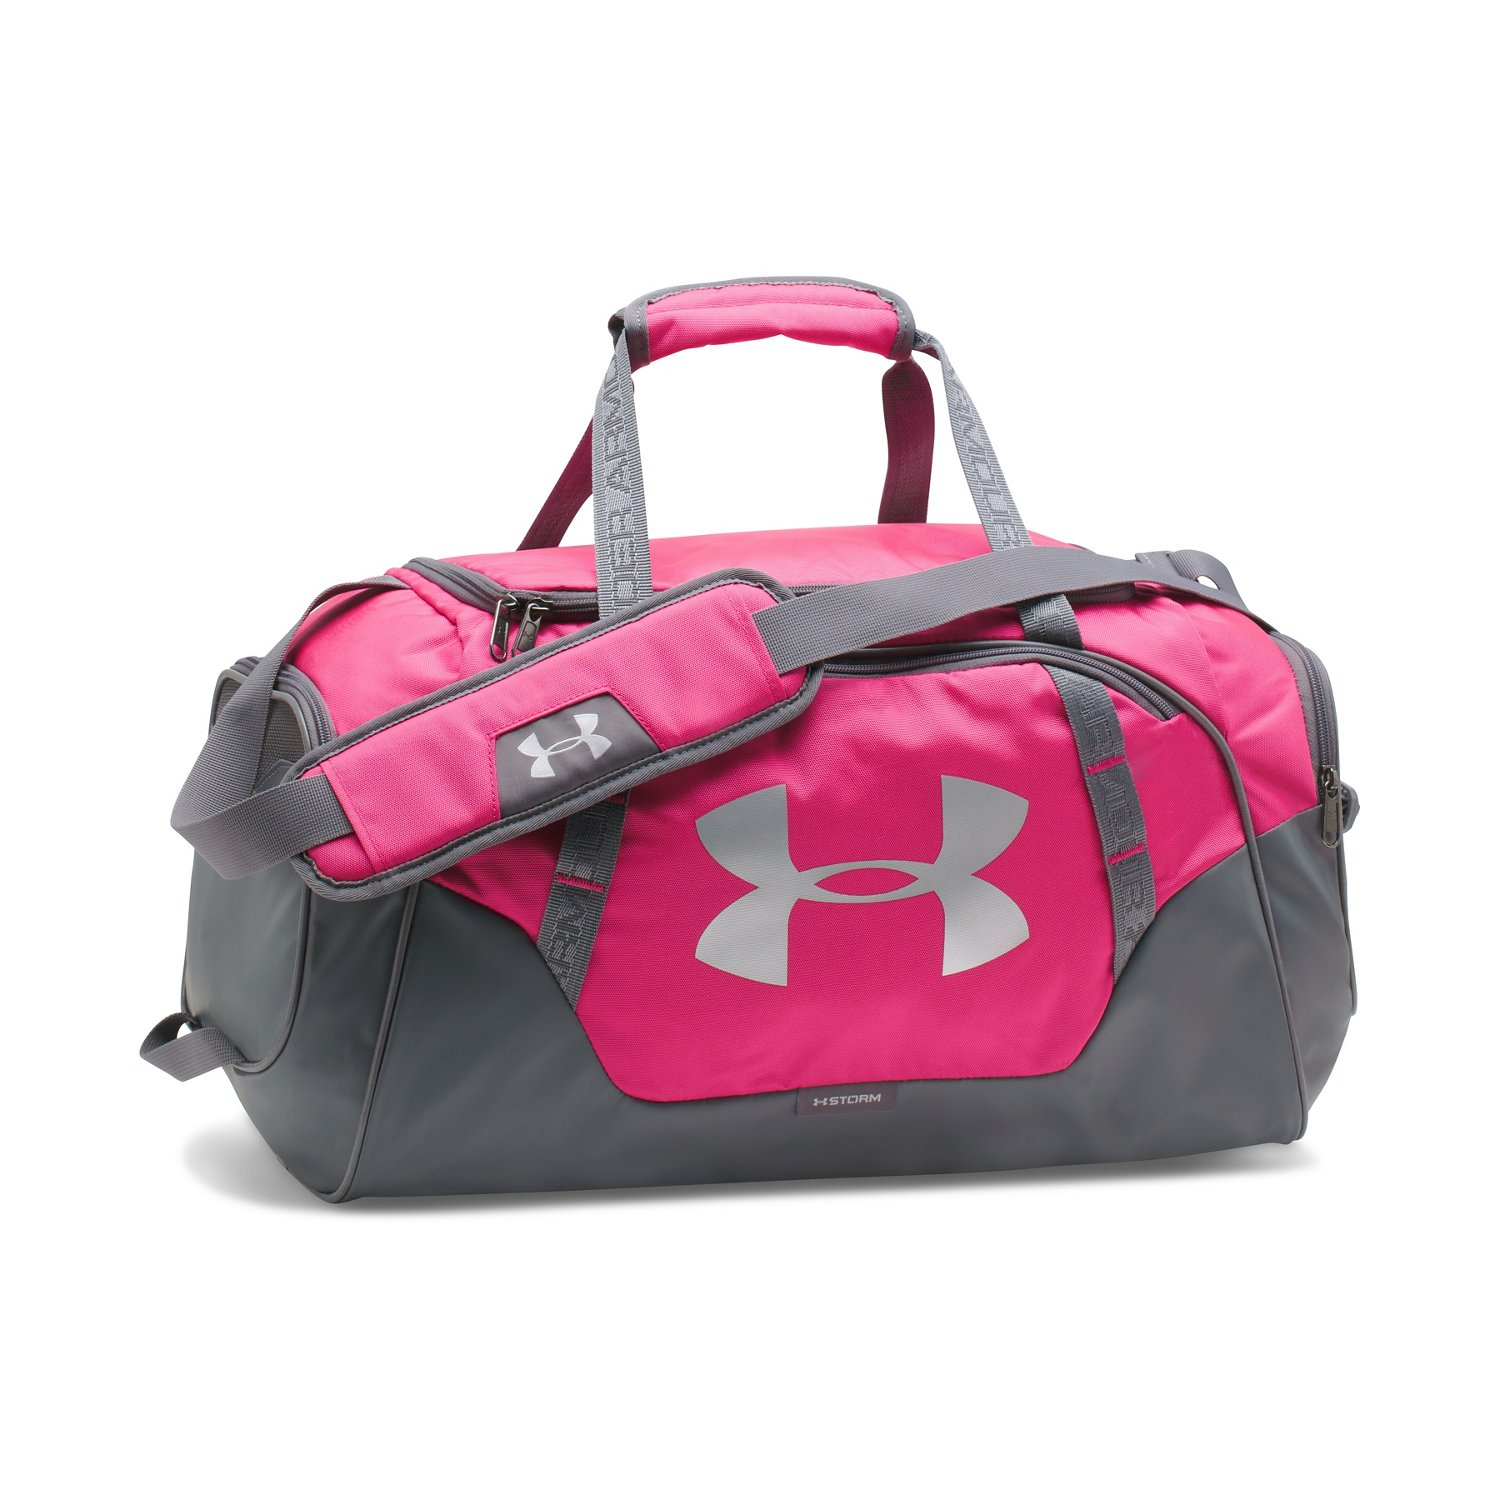 0f32cc1172b Display product reviews for Under Armour Undeniable II Small Duffel Bag